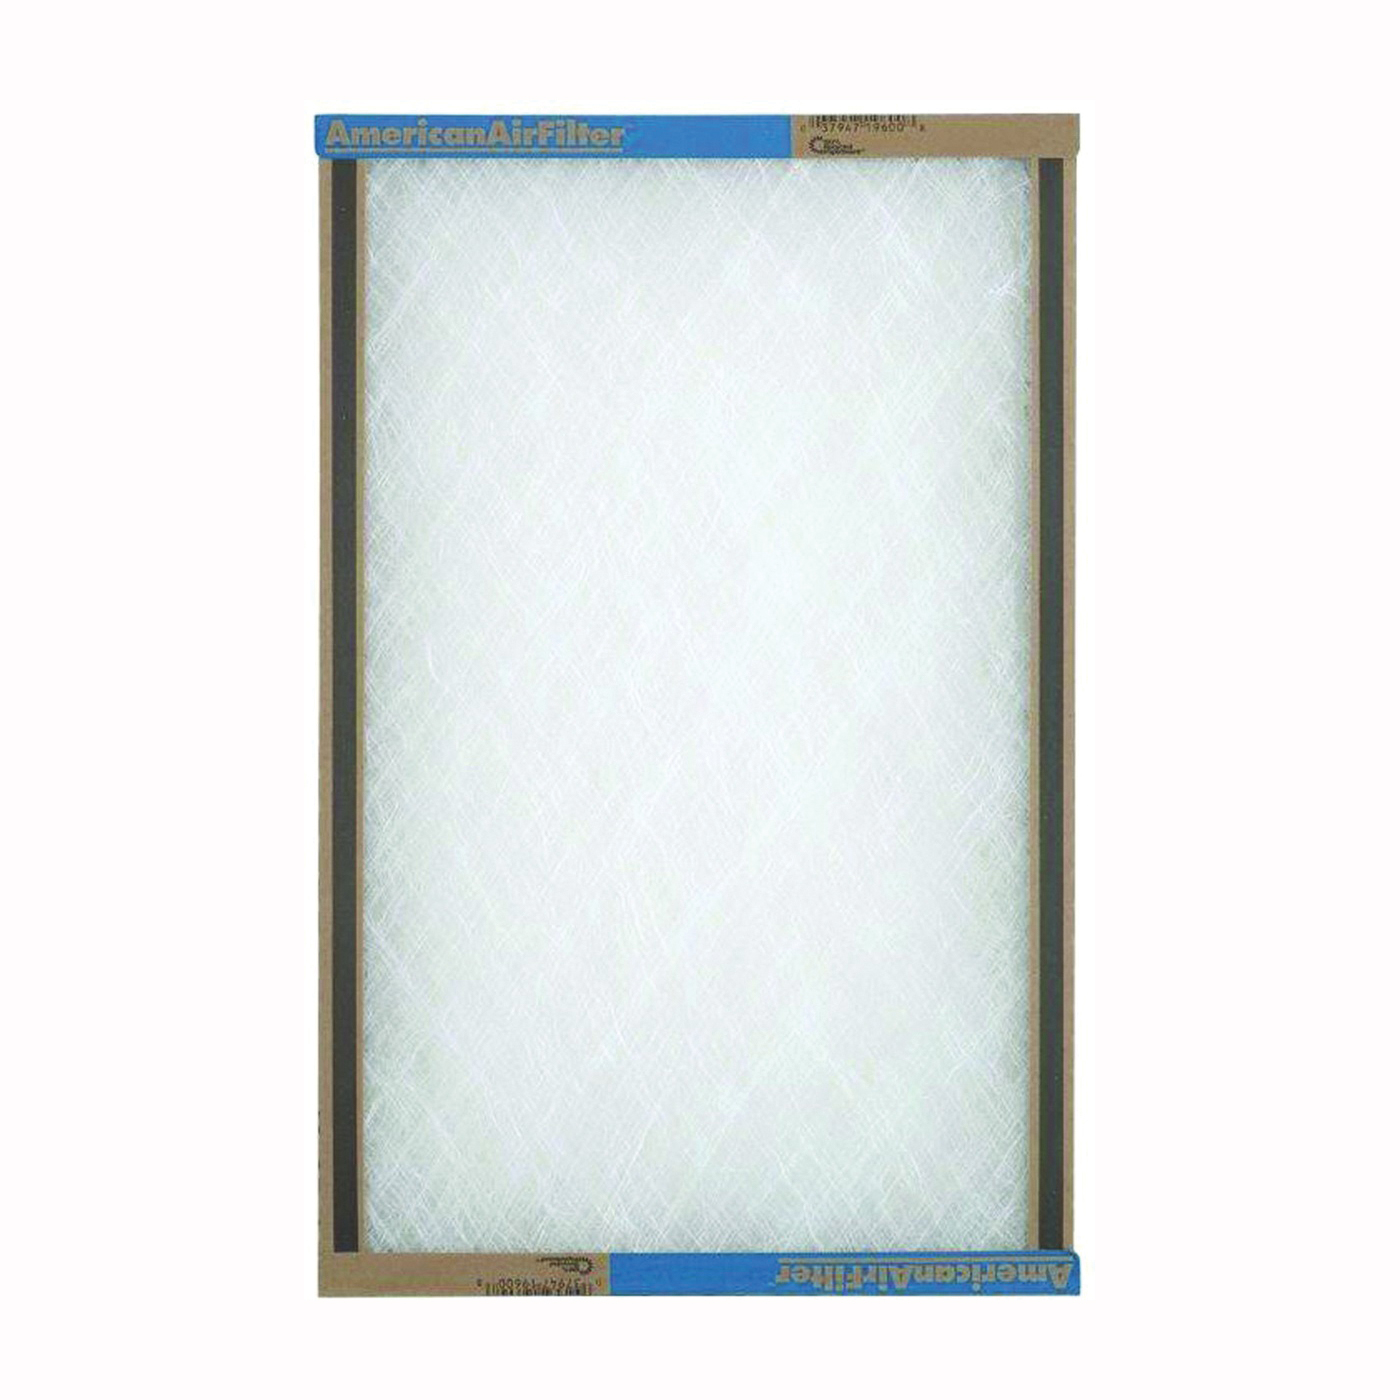 Picture of AAF 220-800-051 Panel Filter, 25 in L, 20 in W, Chipboard Frame